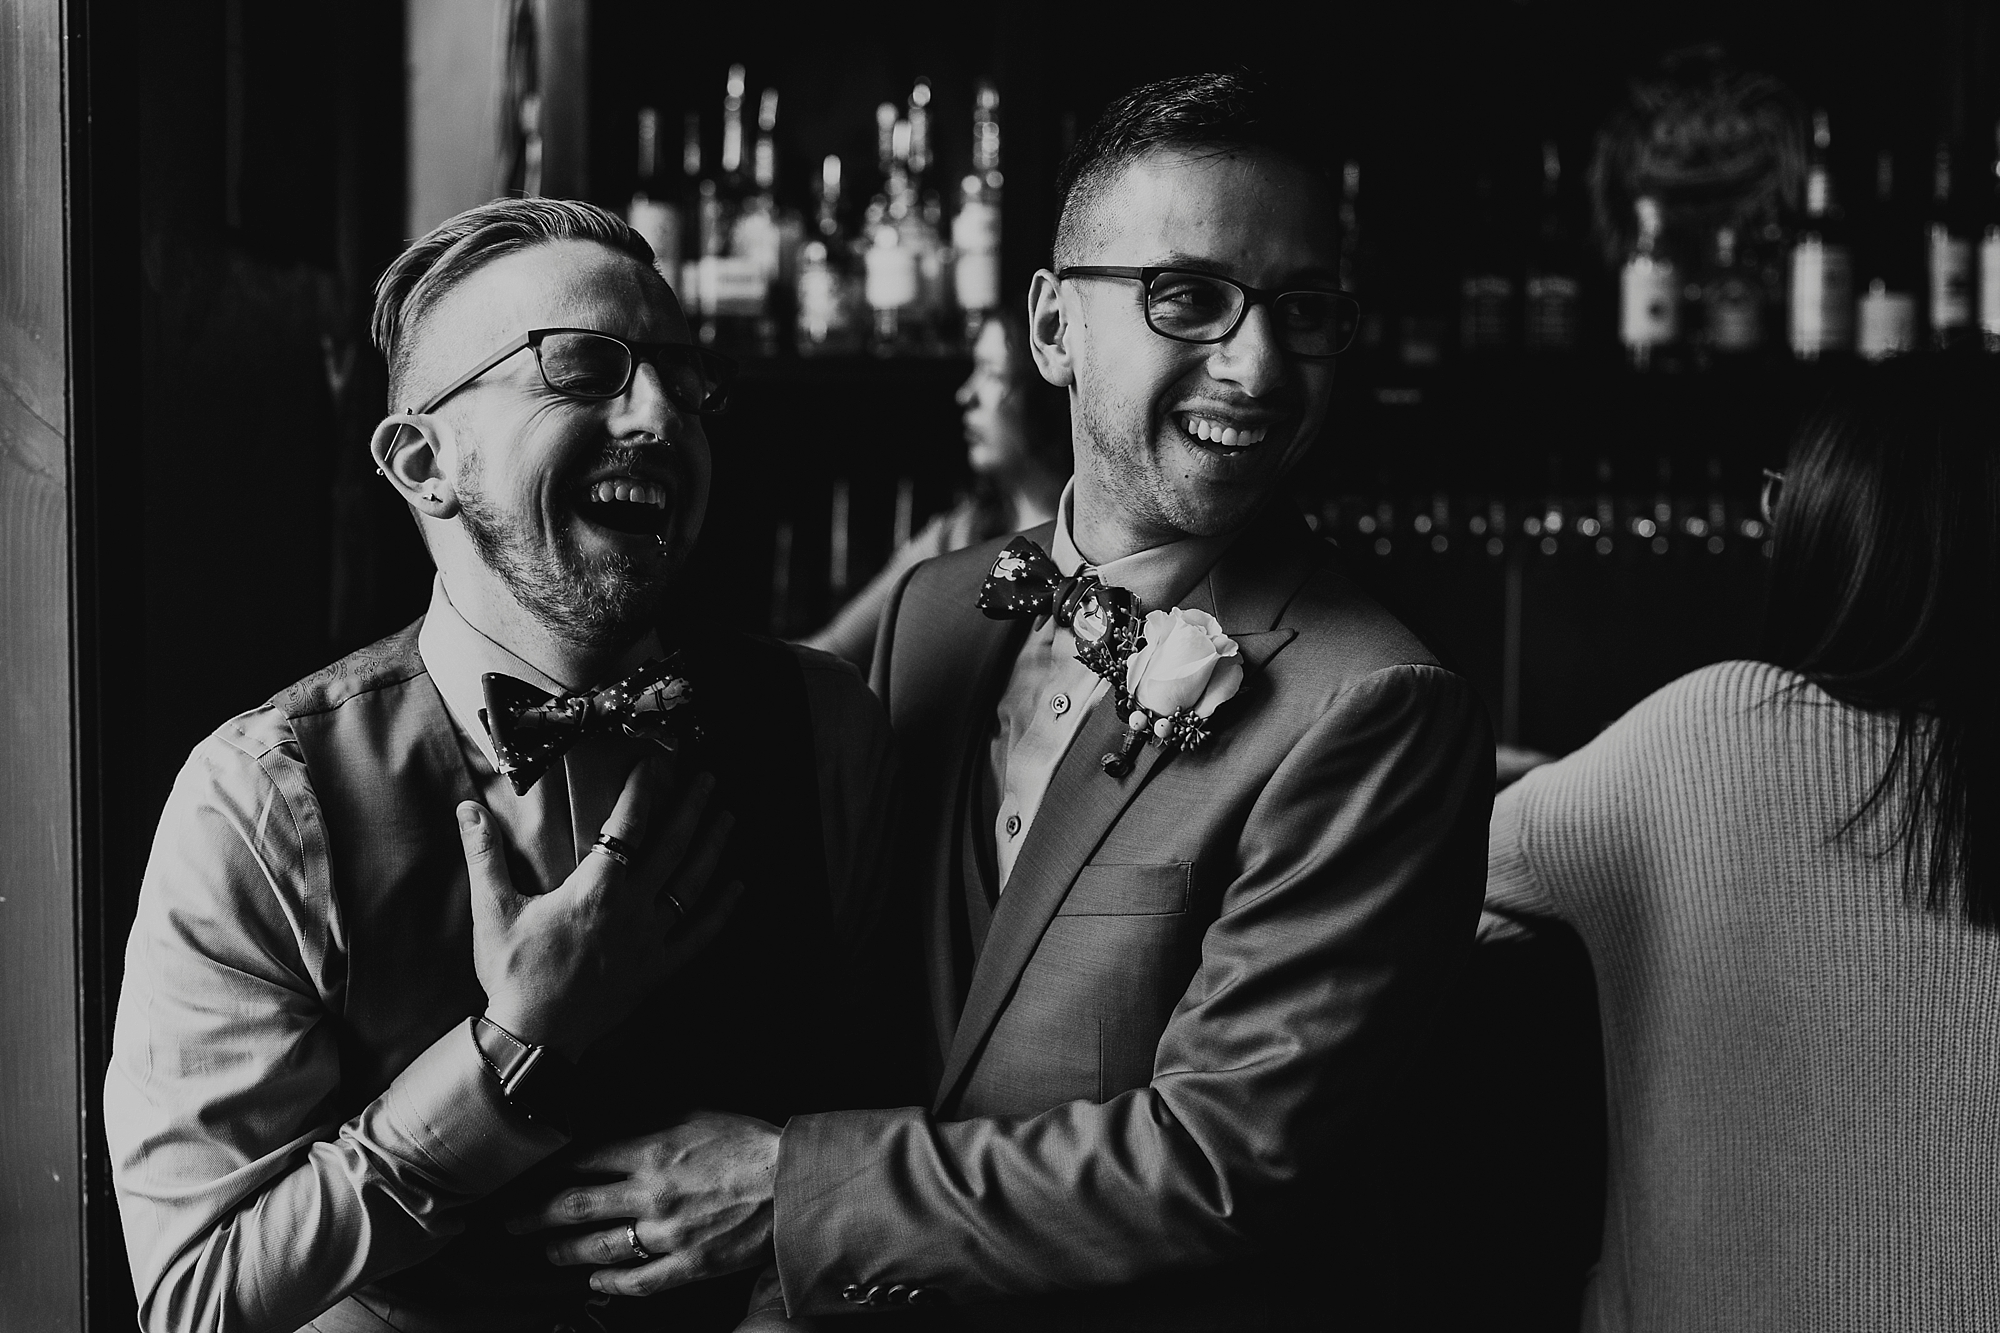 Joe_Mac_Creative_Philadelphia_Philly_LGBT_Gay_Engagement_Wedding_Photography__0135.jpg